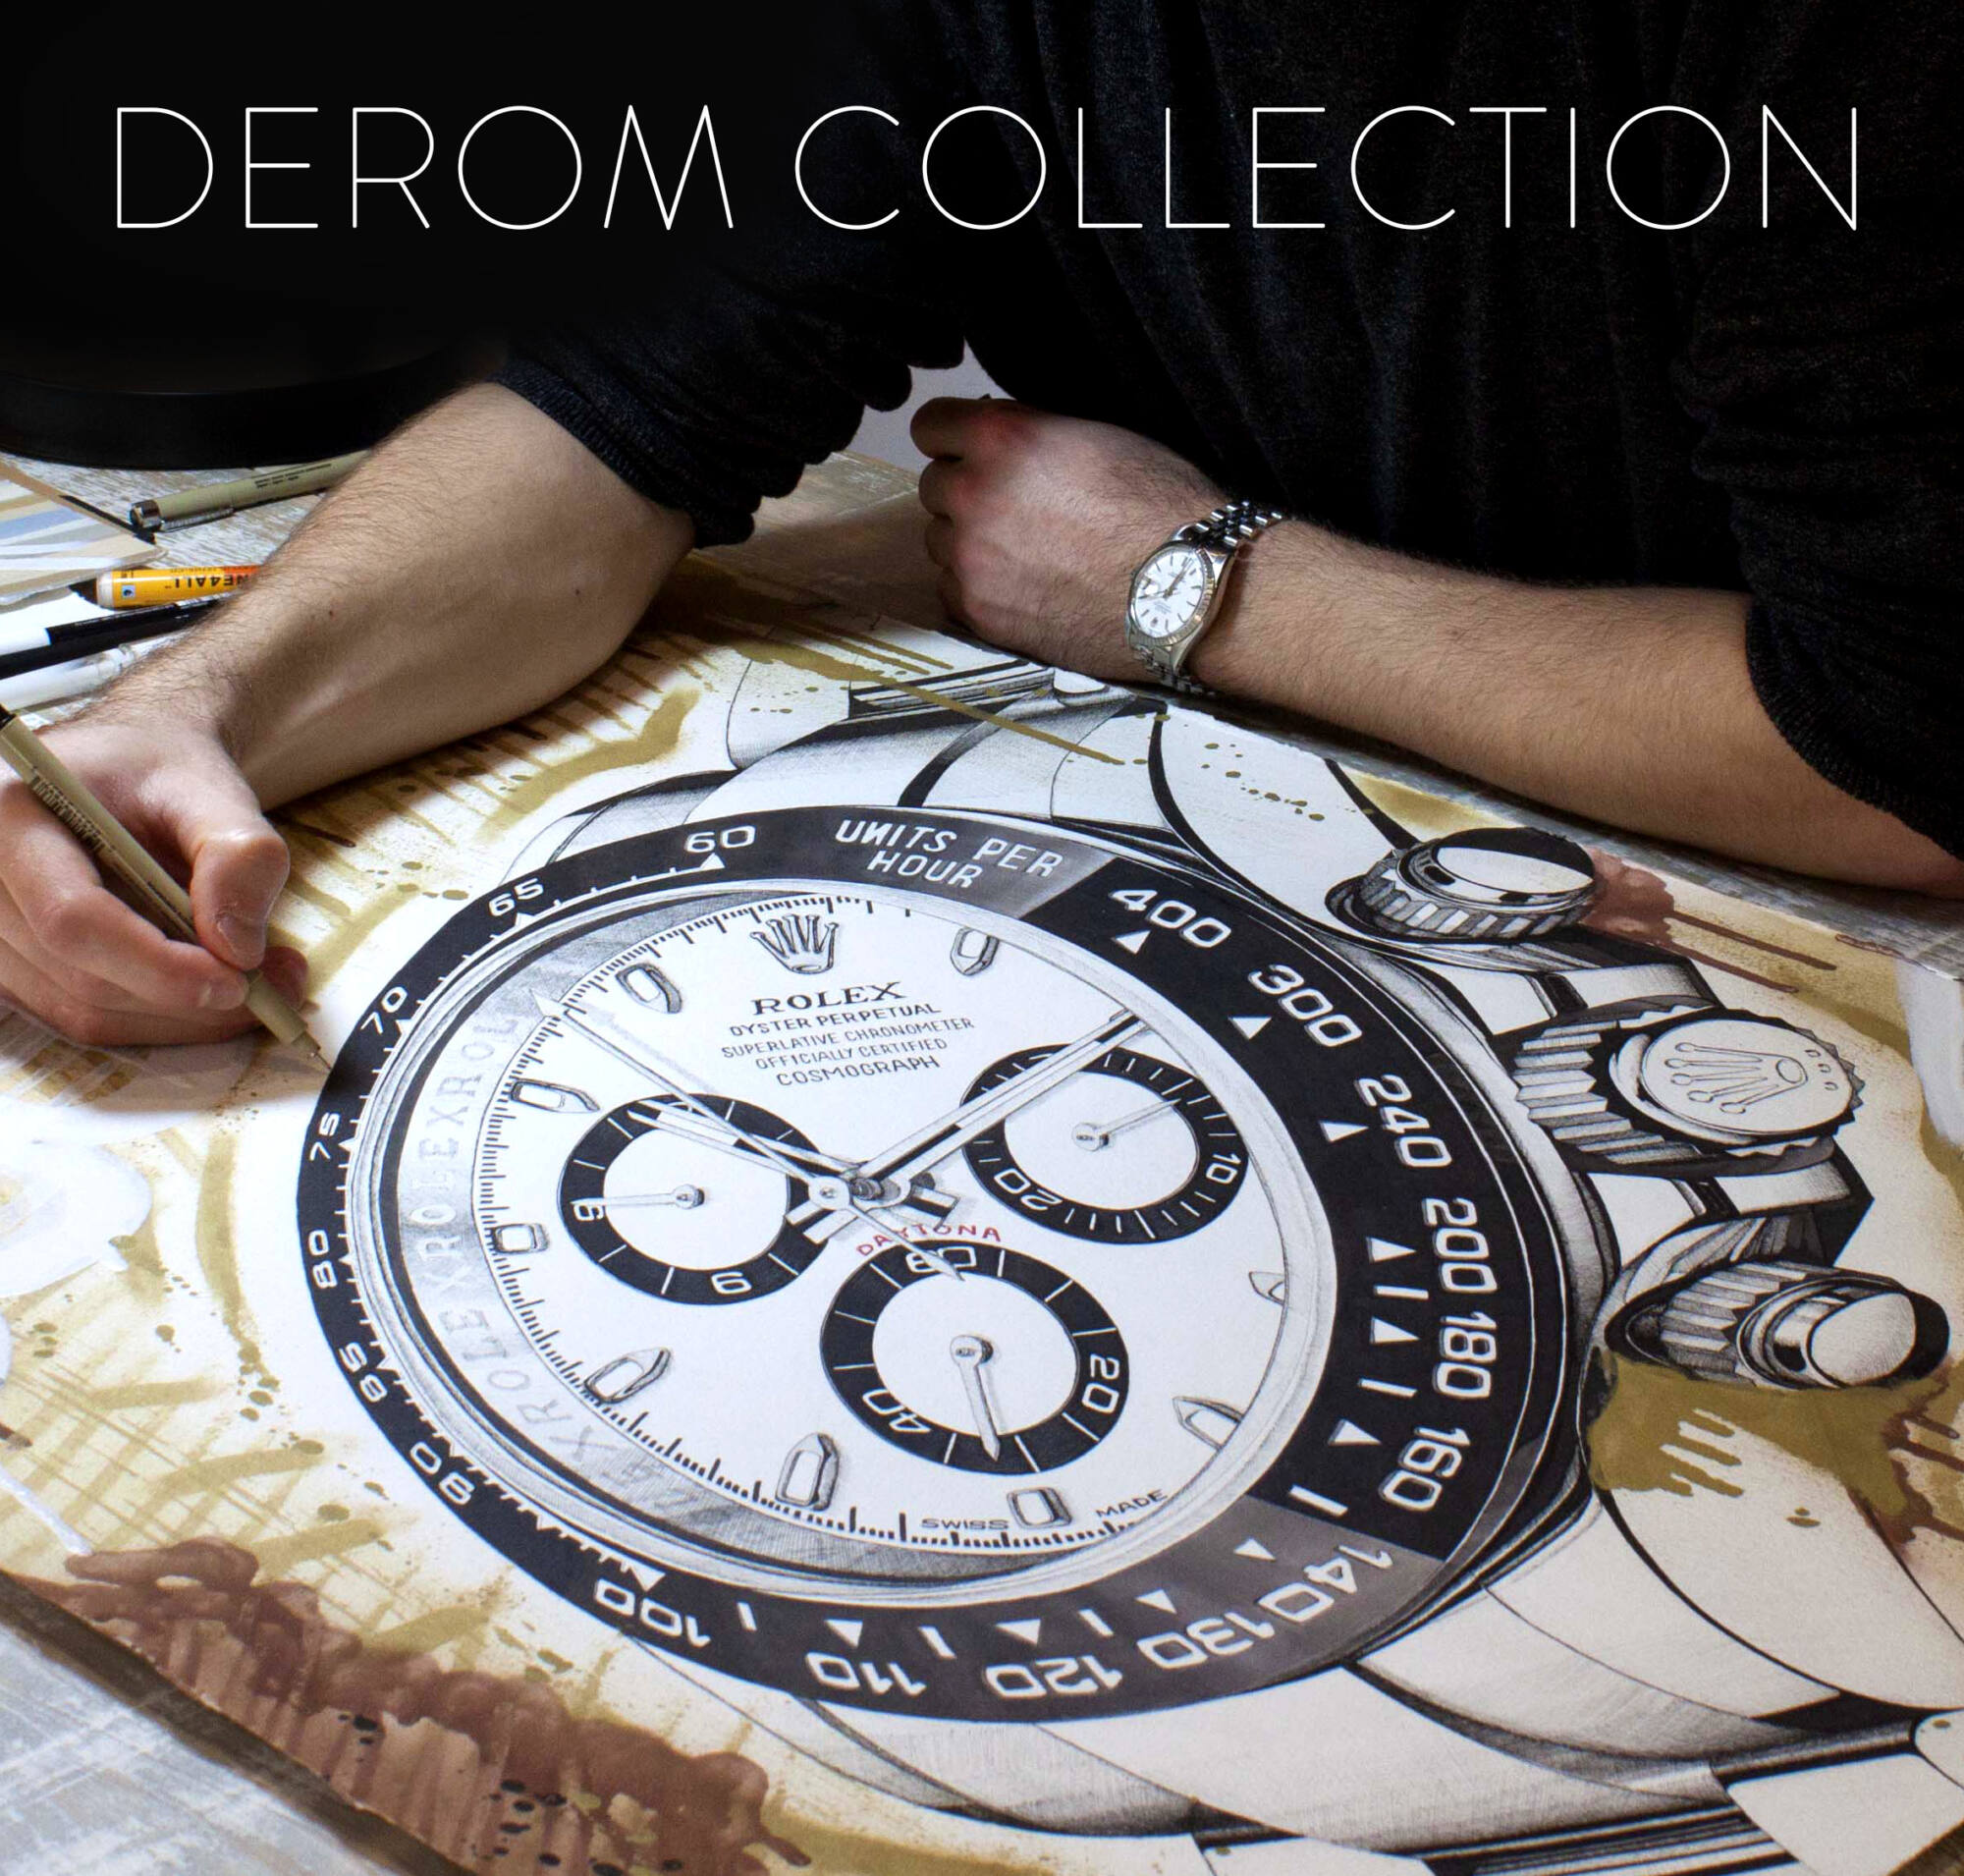 Derom Collection - MondaniWeb